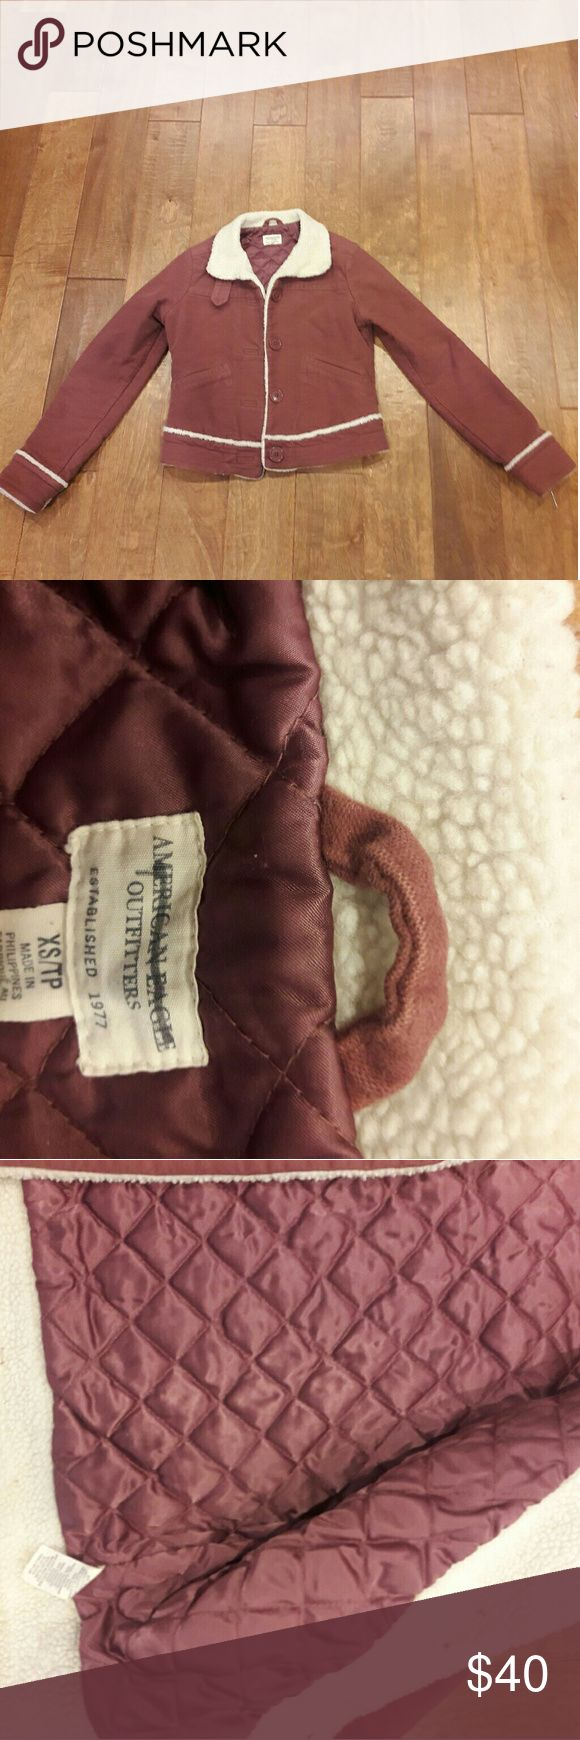 American eagle  jacket Soft pink ,jacket button down front American Eagle Outfitters Jackets & Coats Utility Jackets